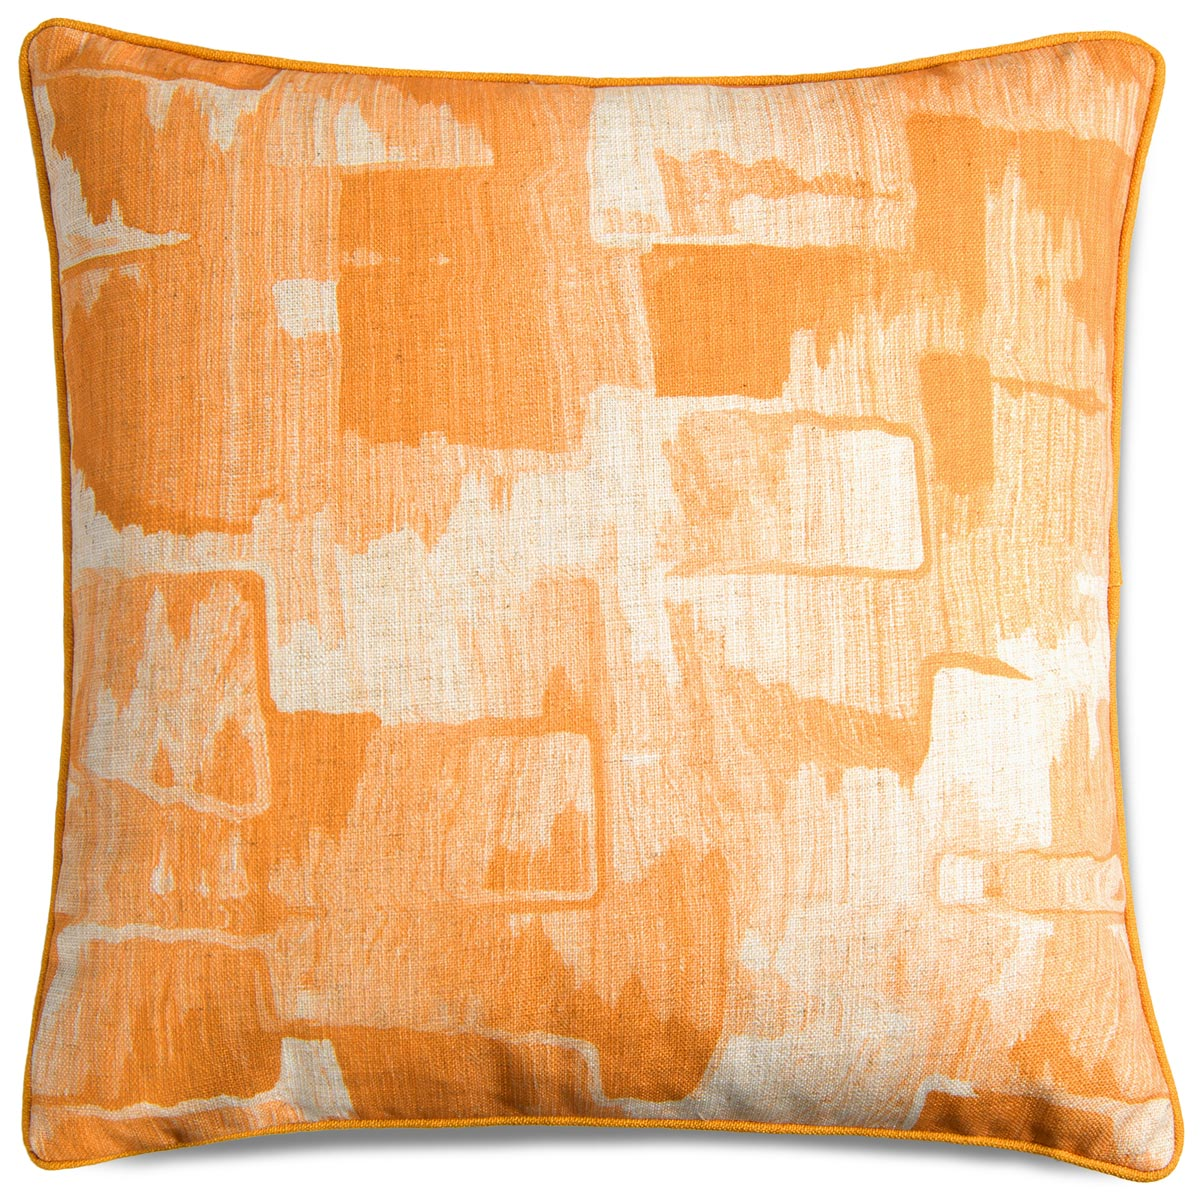 Denim Abstract Pillow in Mustard - ModShop1.com